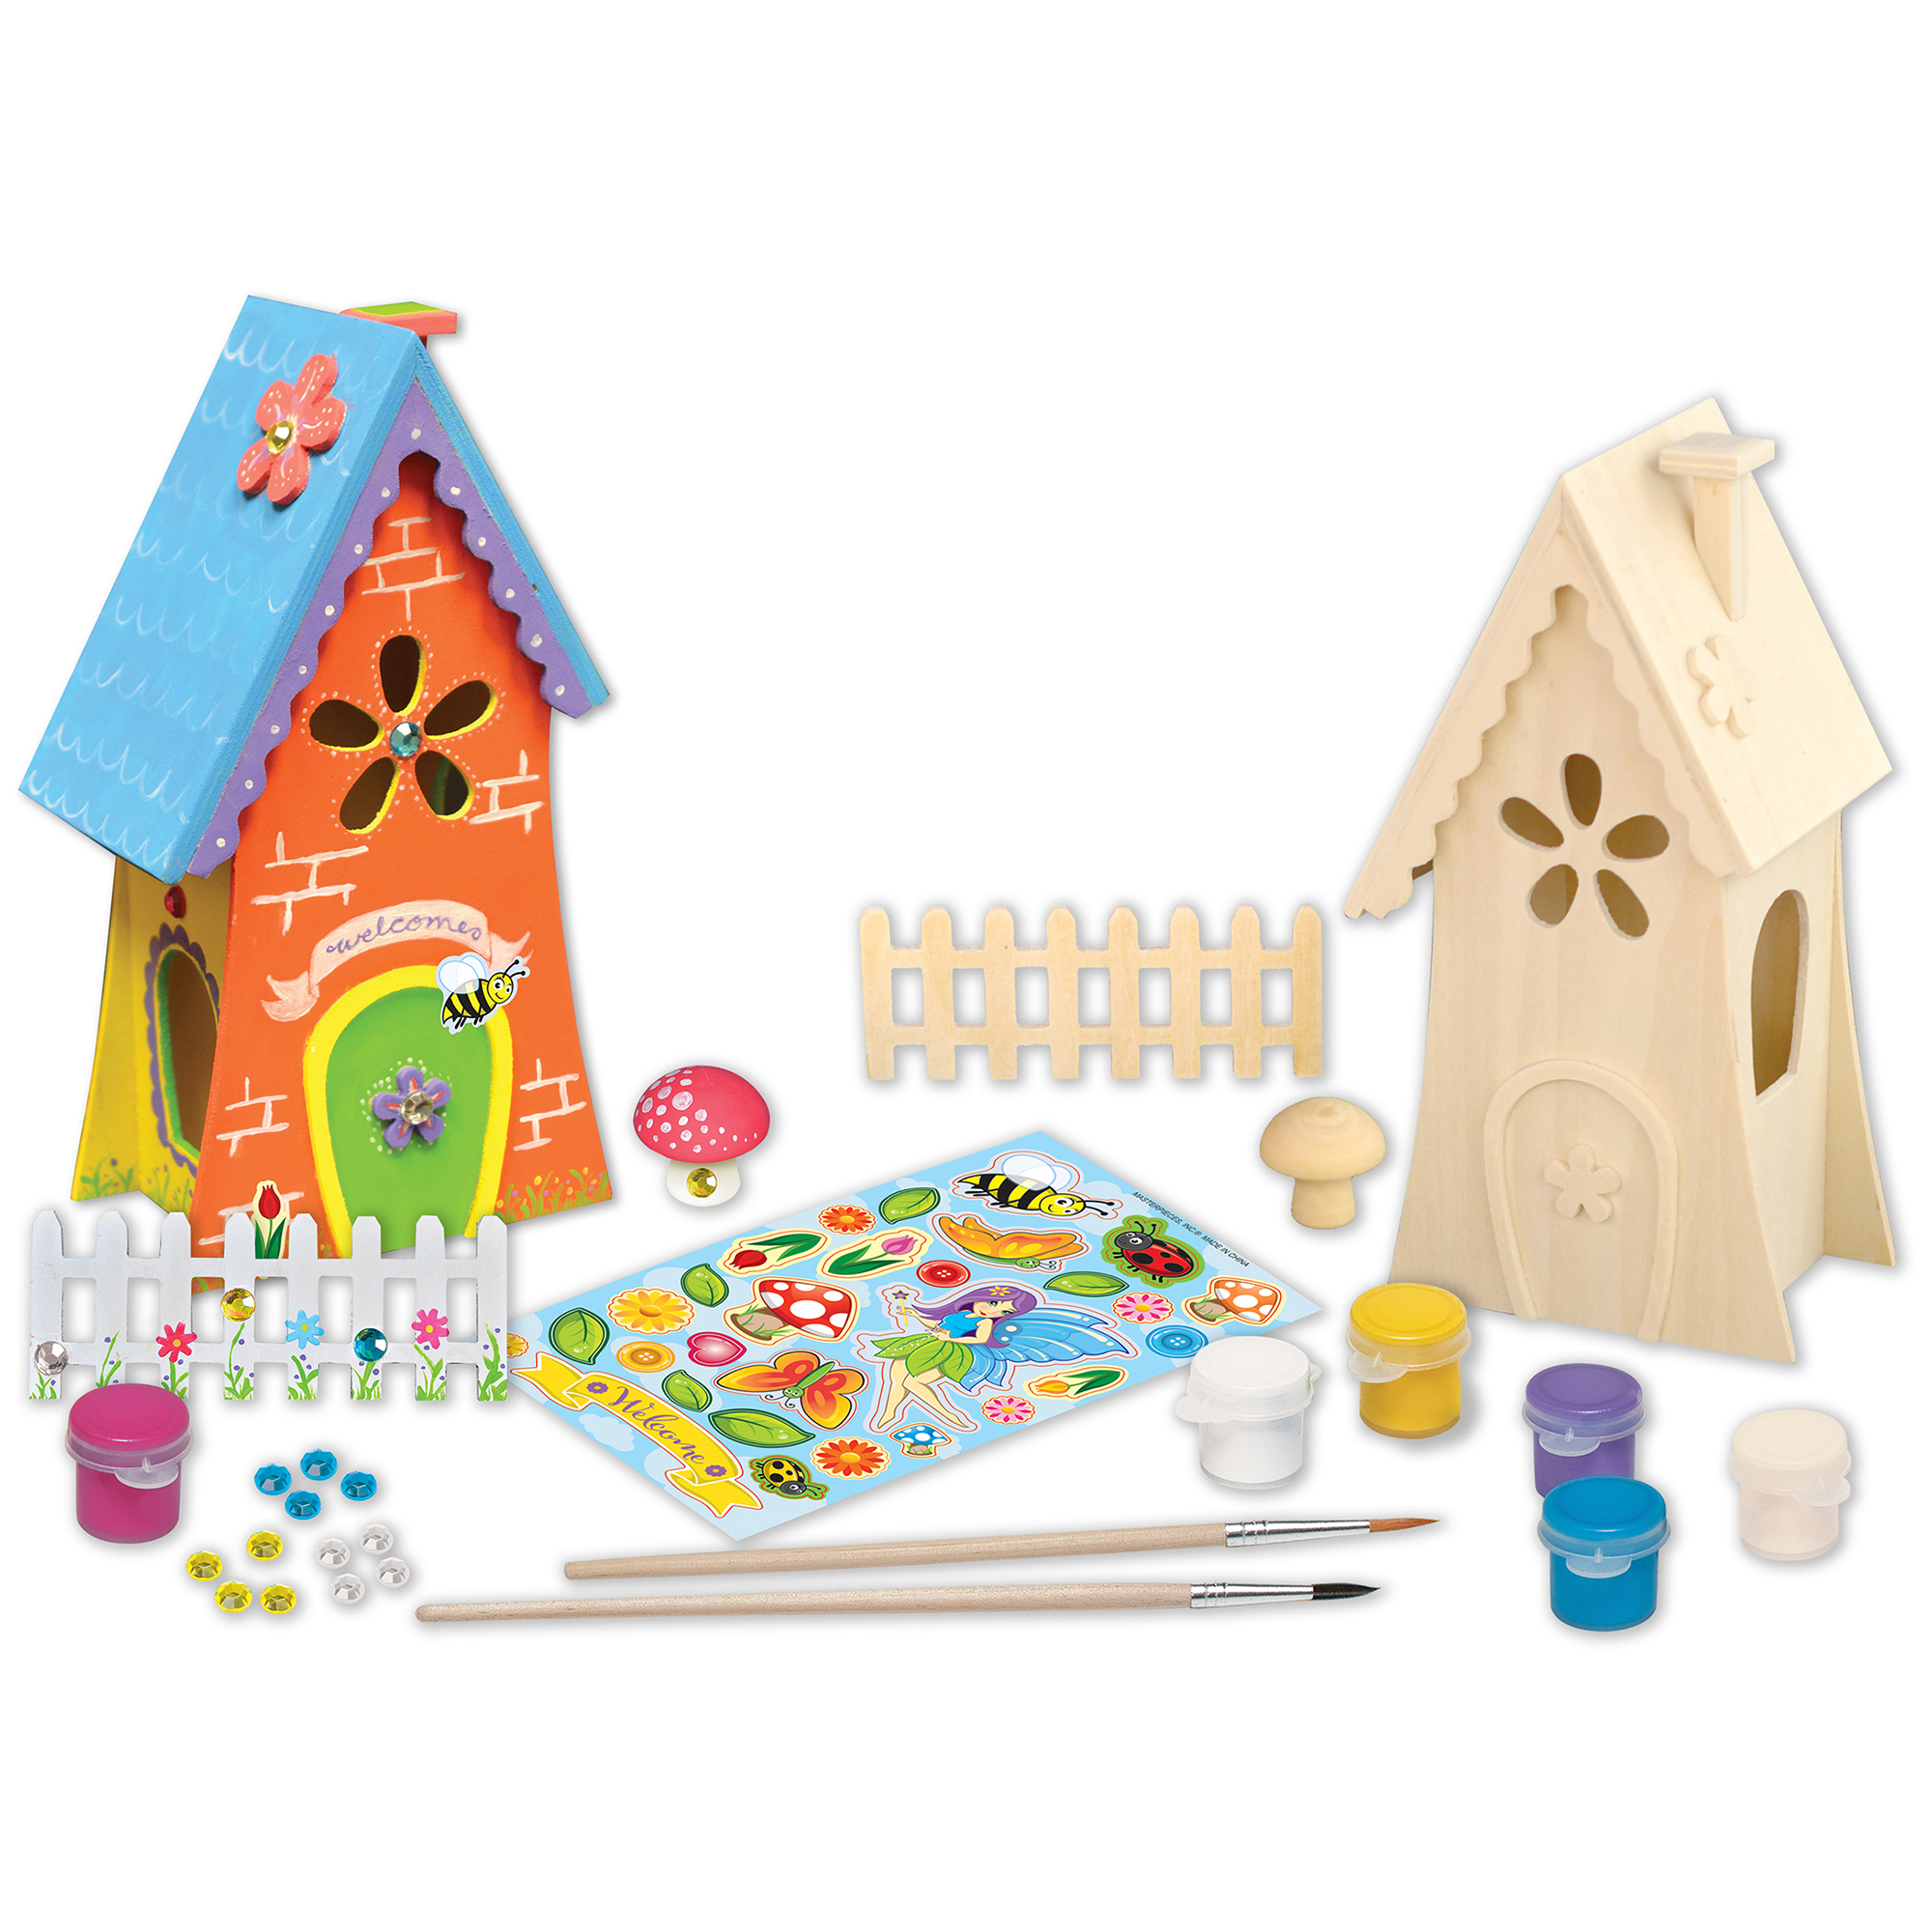 MasterPieces Works of Ahhh Wood Fairy Garden Deluxe Paint Kit, 1 Each by MasterPieces